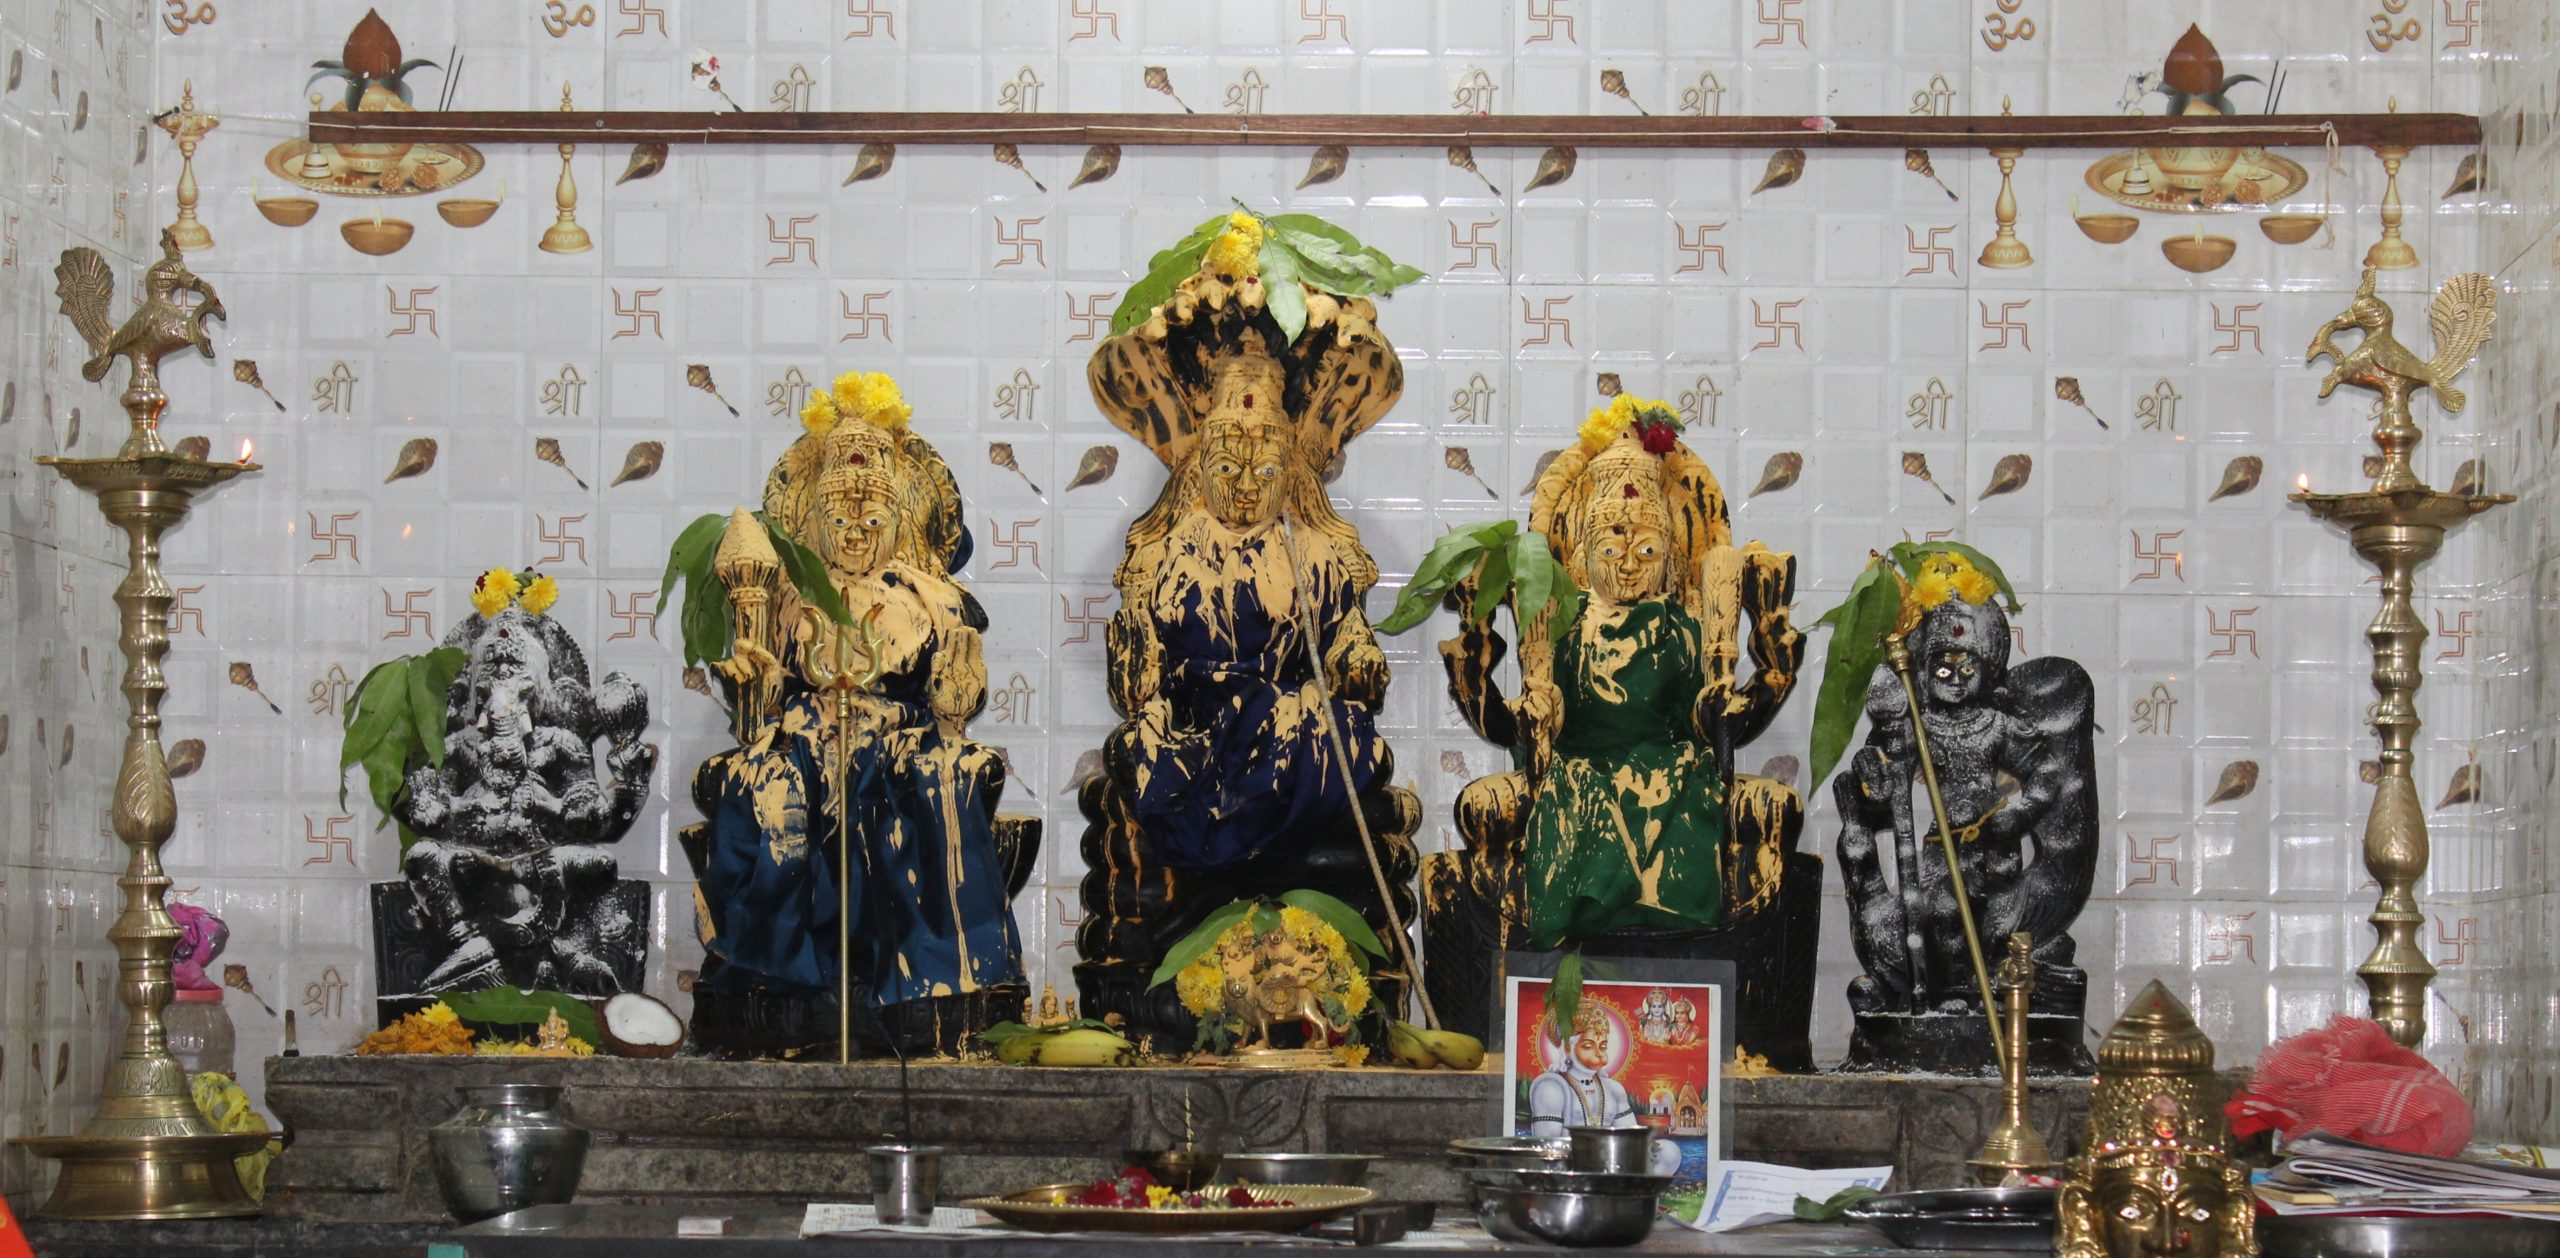 Hindu god idols in a temple